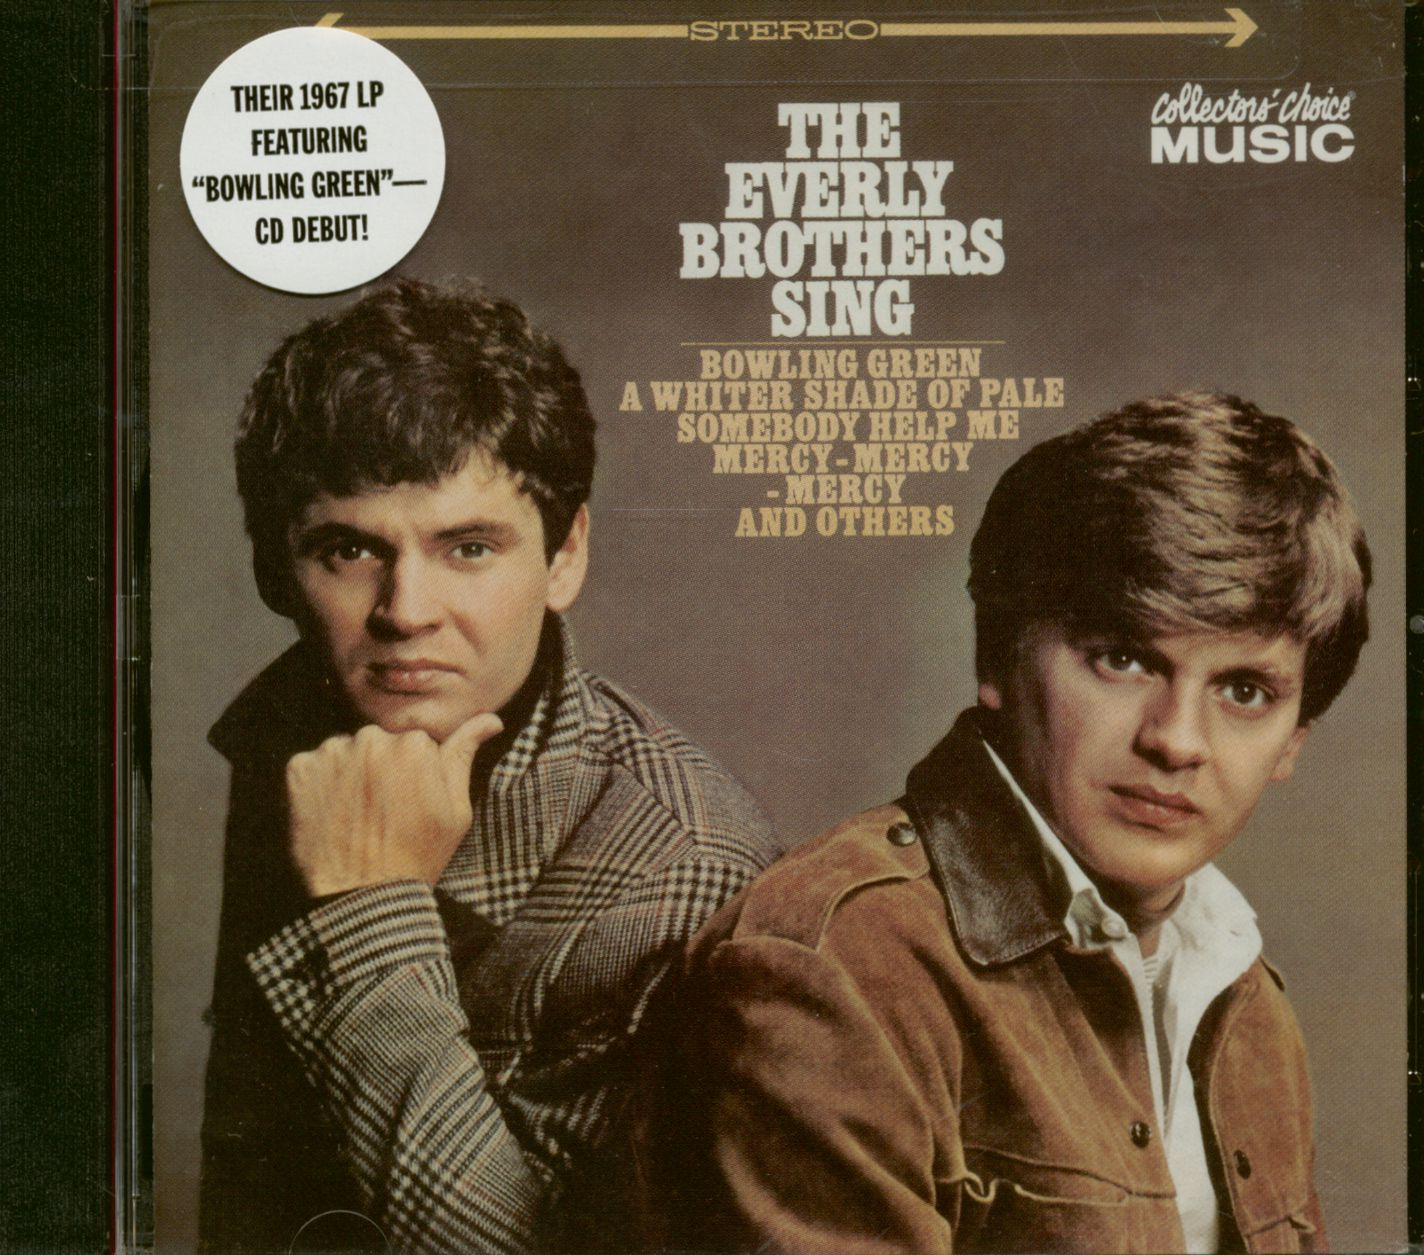 The Everly Brothers Cd The Everly Brothers Sing Cd